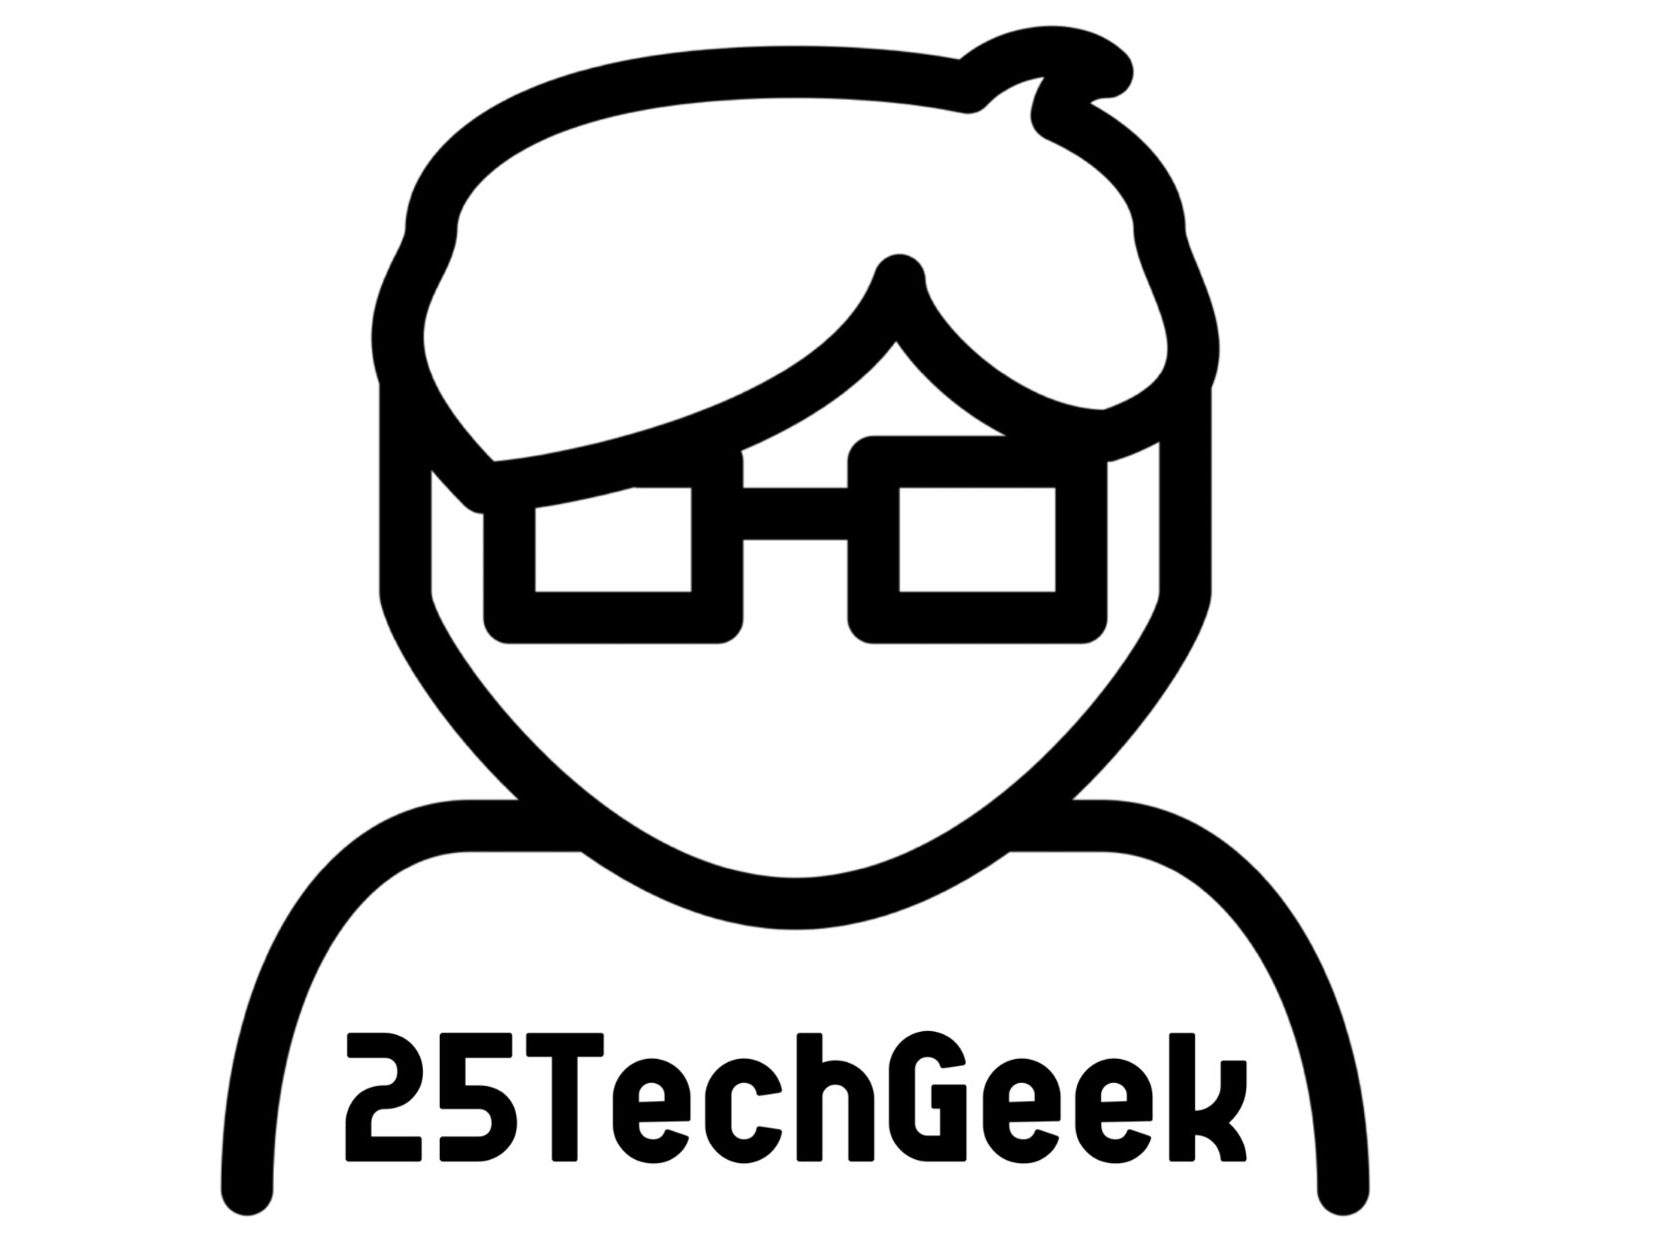 25TechGeek